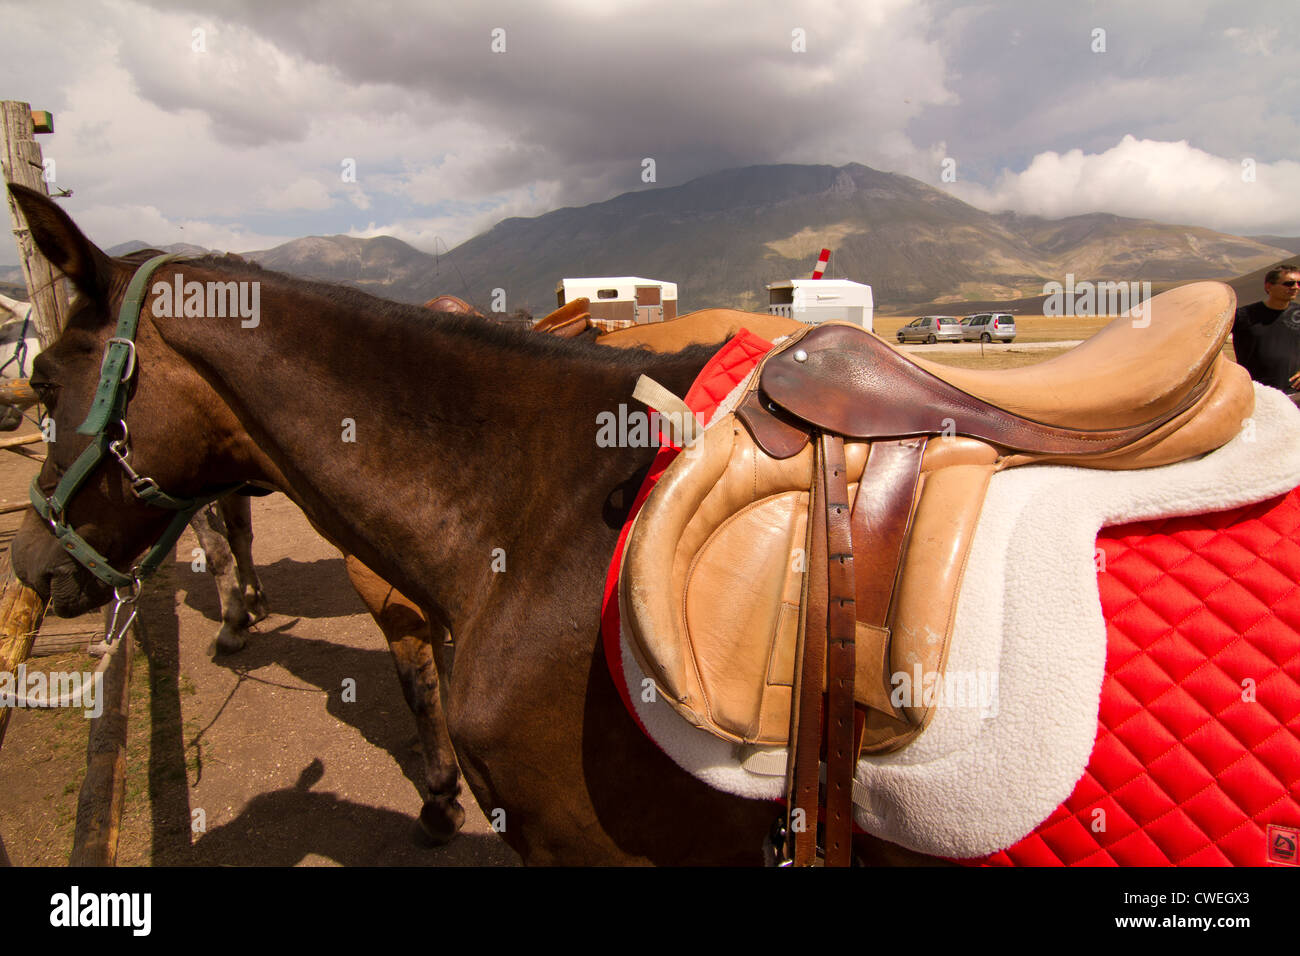 saddle on horse at riding stables in Castelluccio in Italy - Stock Image